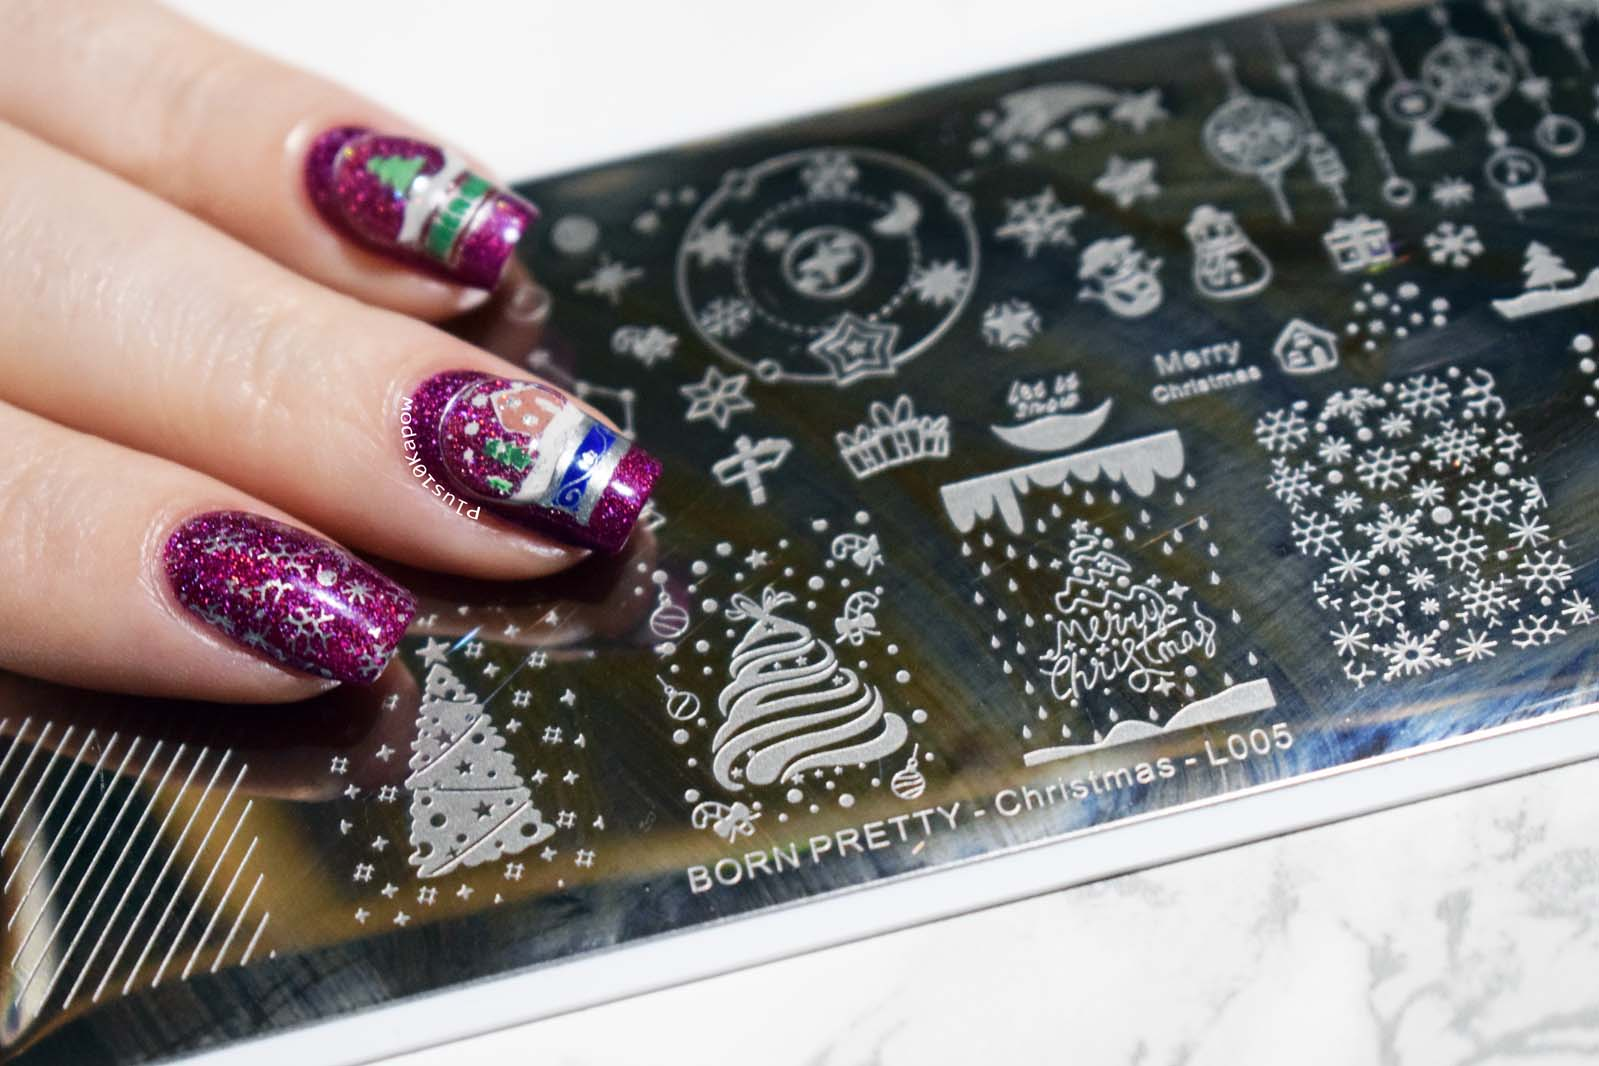 1b5bd95a Born Pretty Store Christmas L005 Stamping Plate